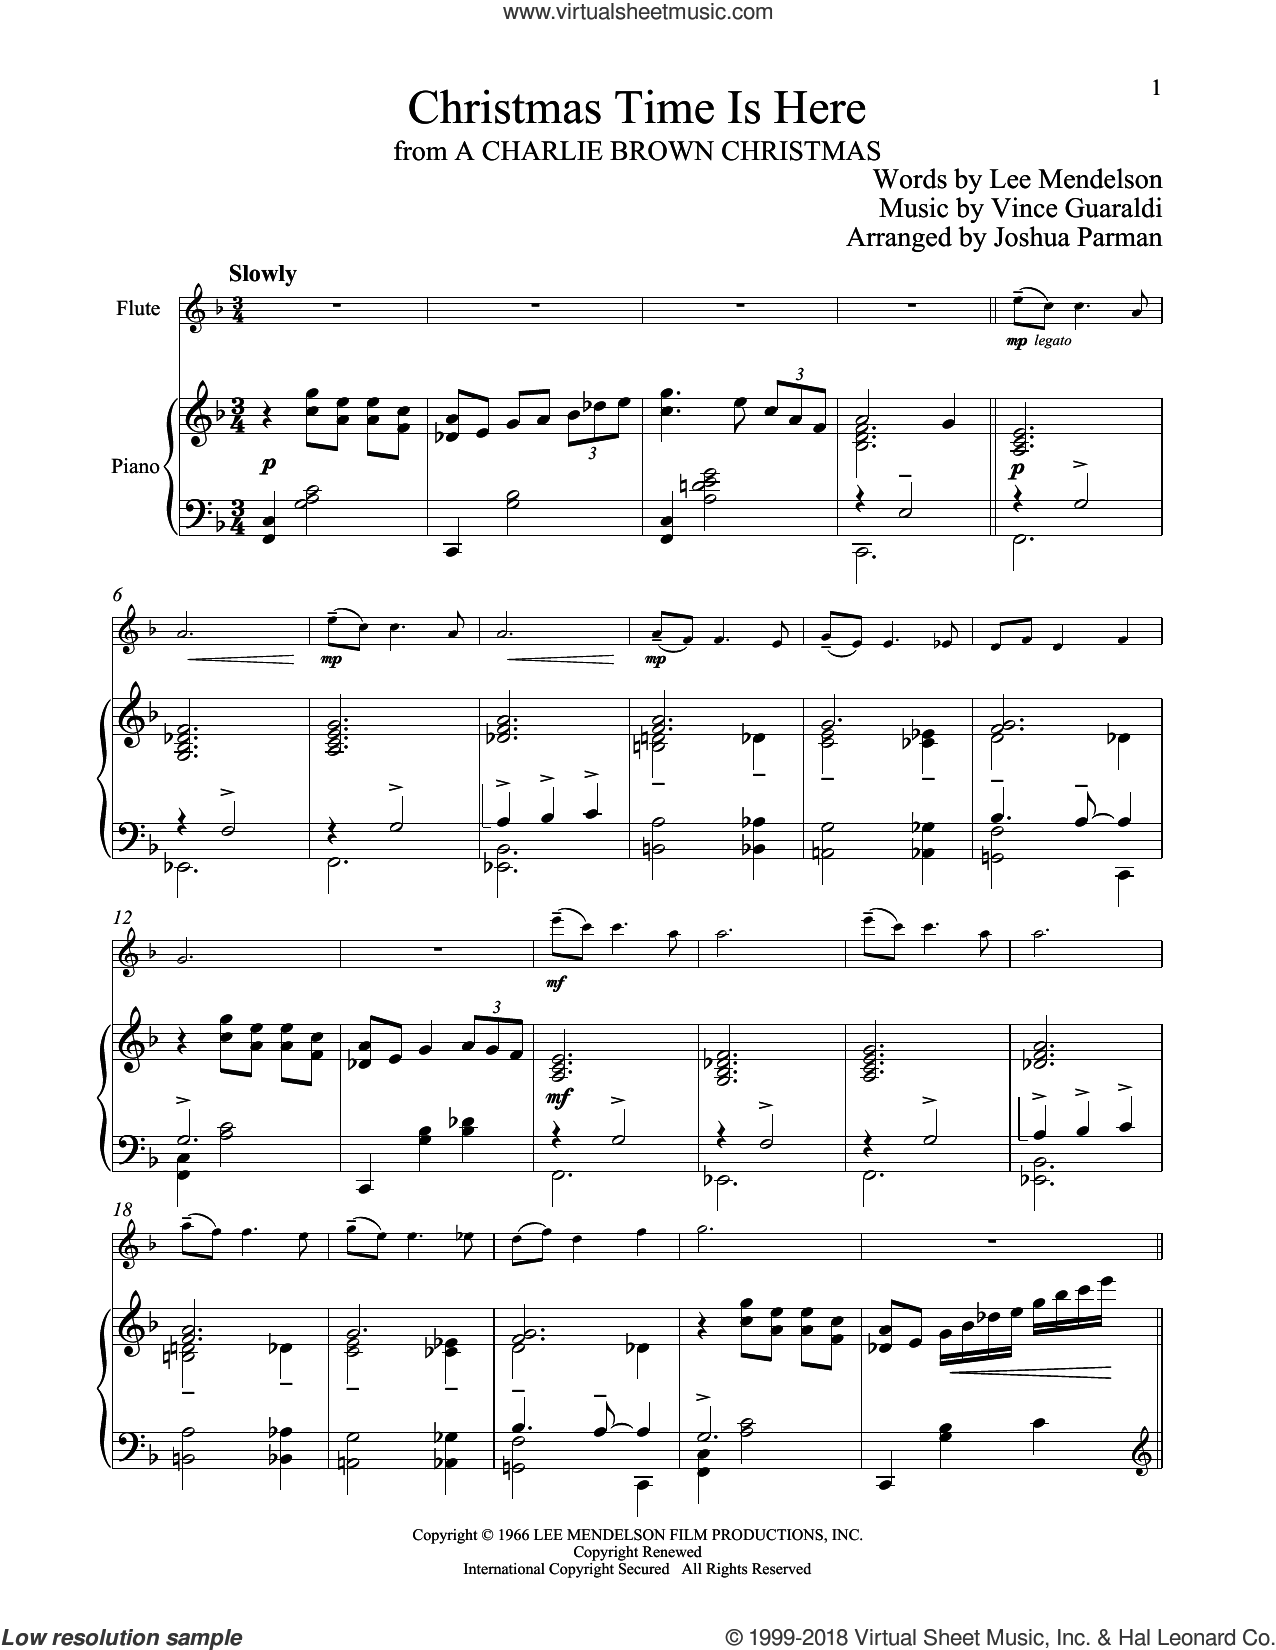 Christmas Time Is Here sheet music for flute and piano by Vince Guaraldi and Lee Mendelson, intermediate skill level